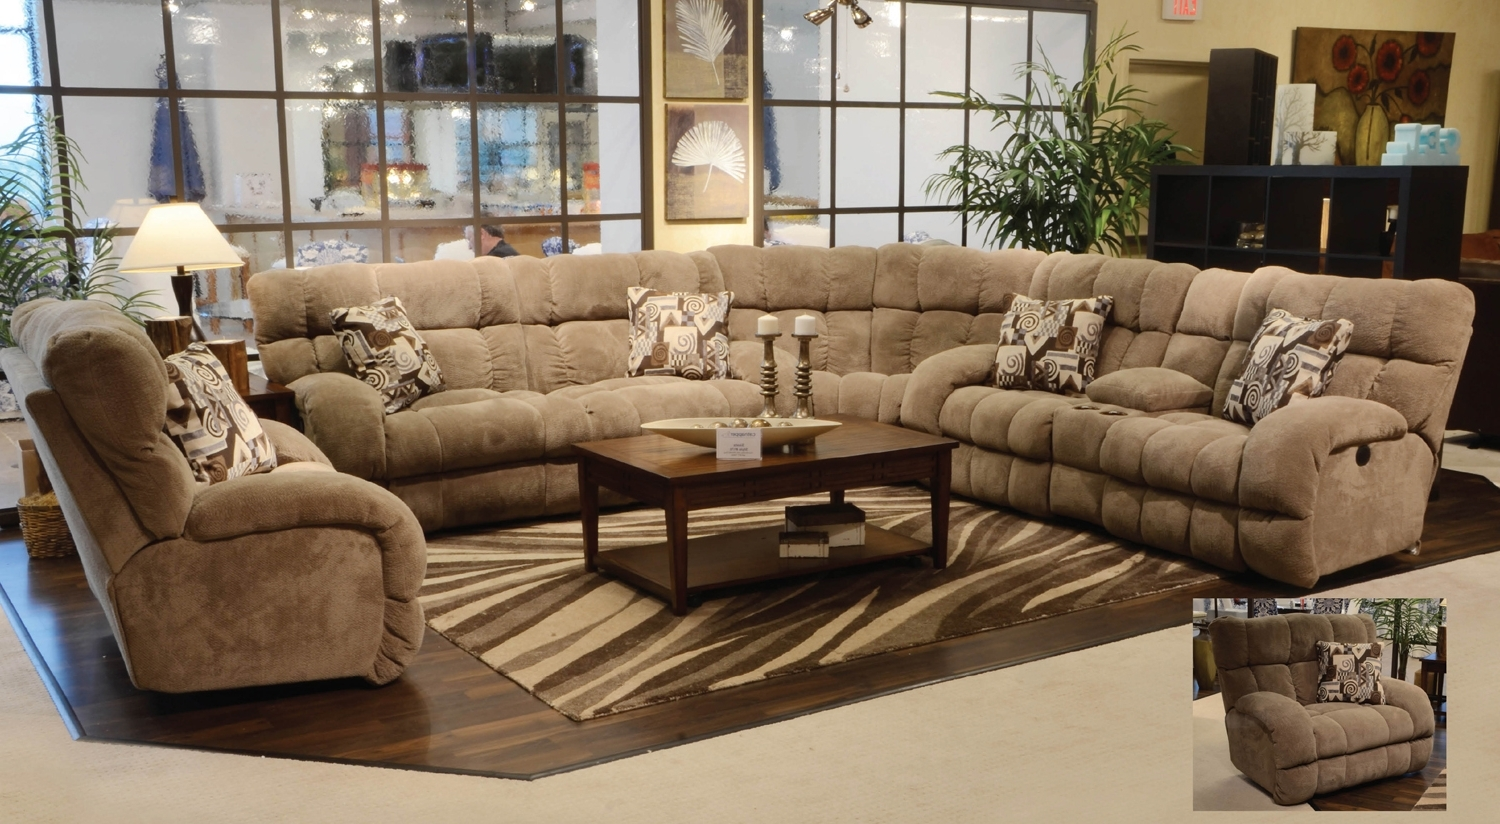 2019 Sofa : Oversized Sectional Sofas Toronto Oversized Plush Sectional For Sectional Sofas In Toronto (View 1 of 20)